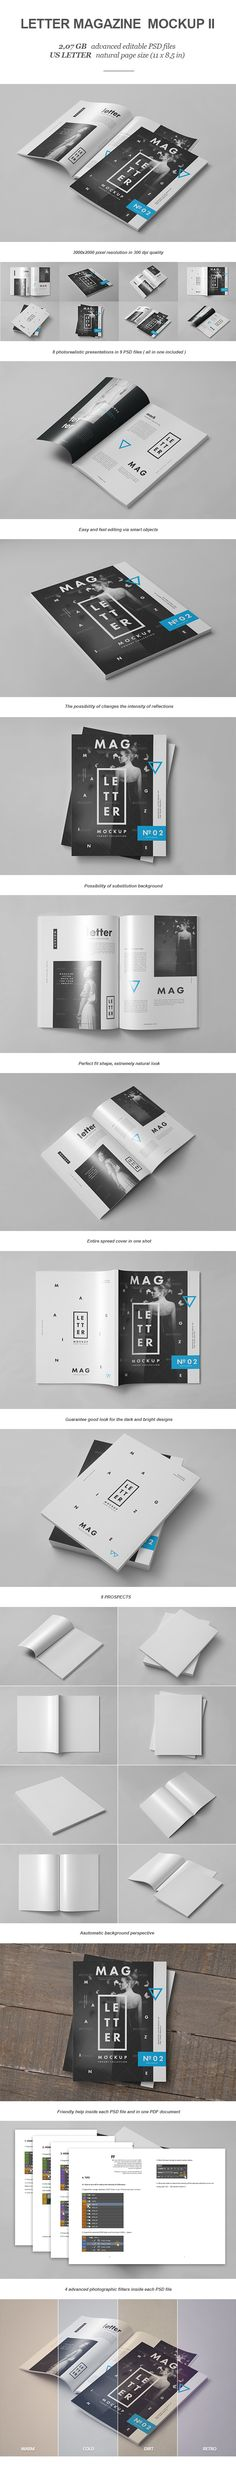 Letter Magazine / Brochure Mock-up II by yogurt86, via Behance